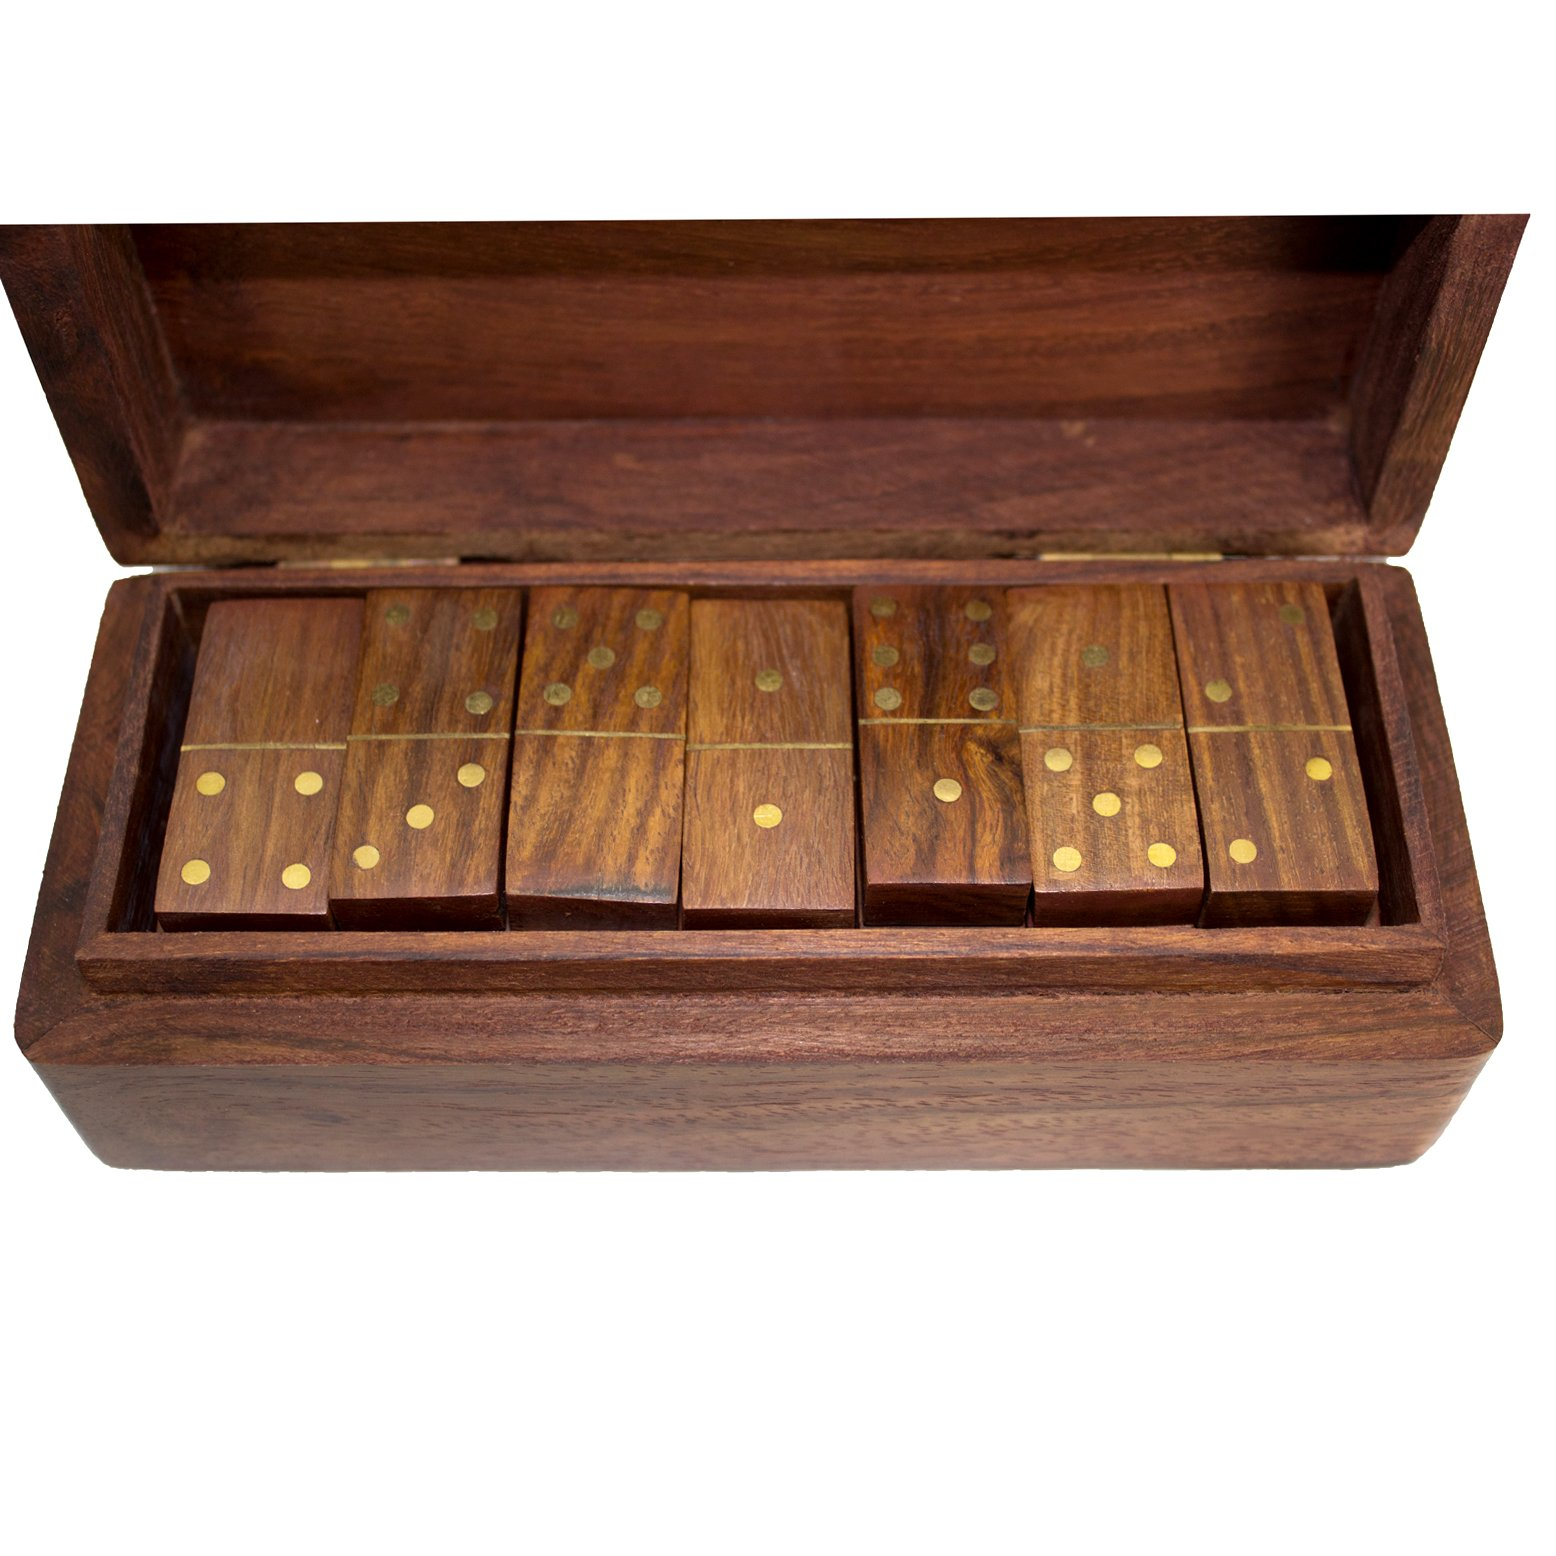 Dominoes Set Wooden Vintage Box Game Travel Domino Traditional 28pc Urban Home